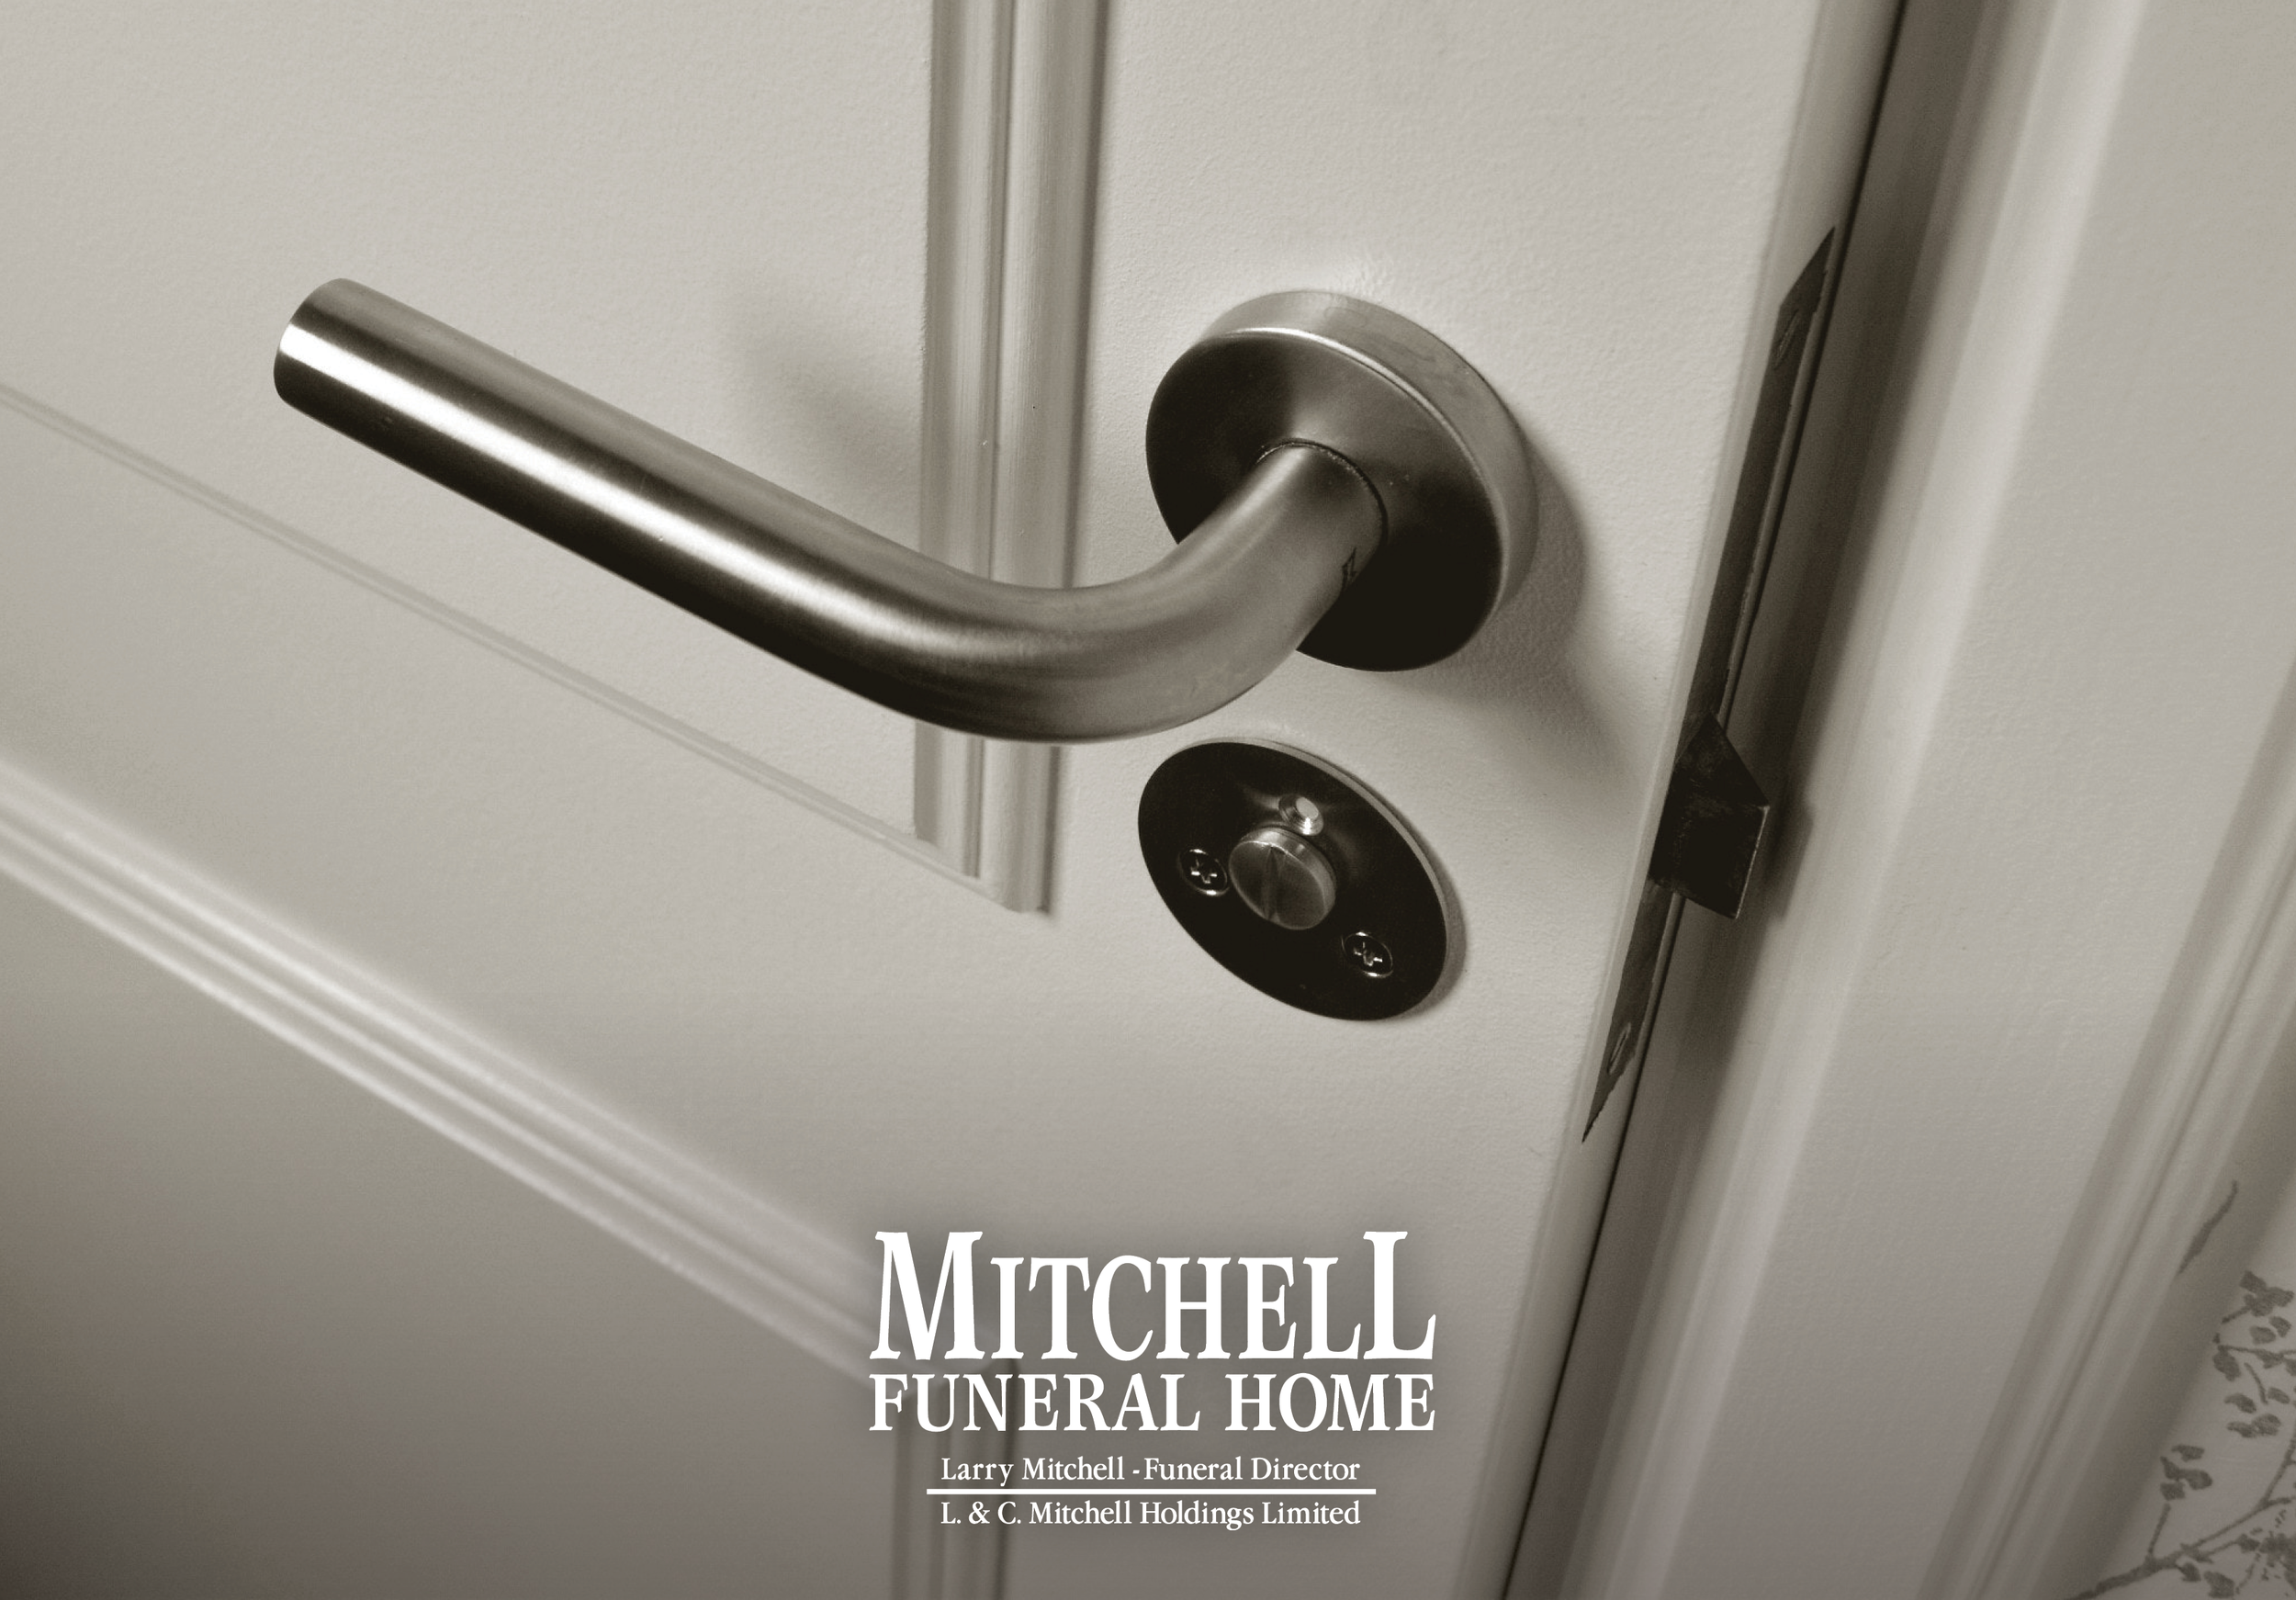 Privacy - Mitchell Funeral Home is designed to offer spaces that accommodate to the breadth of emotions families feel when they are in our facility. If they need privacy or a space to reflect, we can accommodate to that.